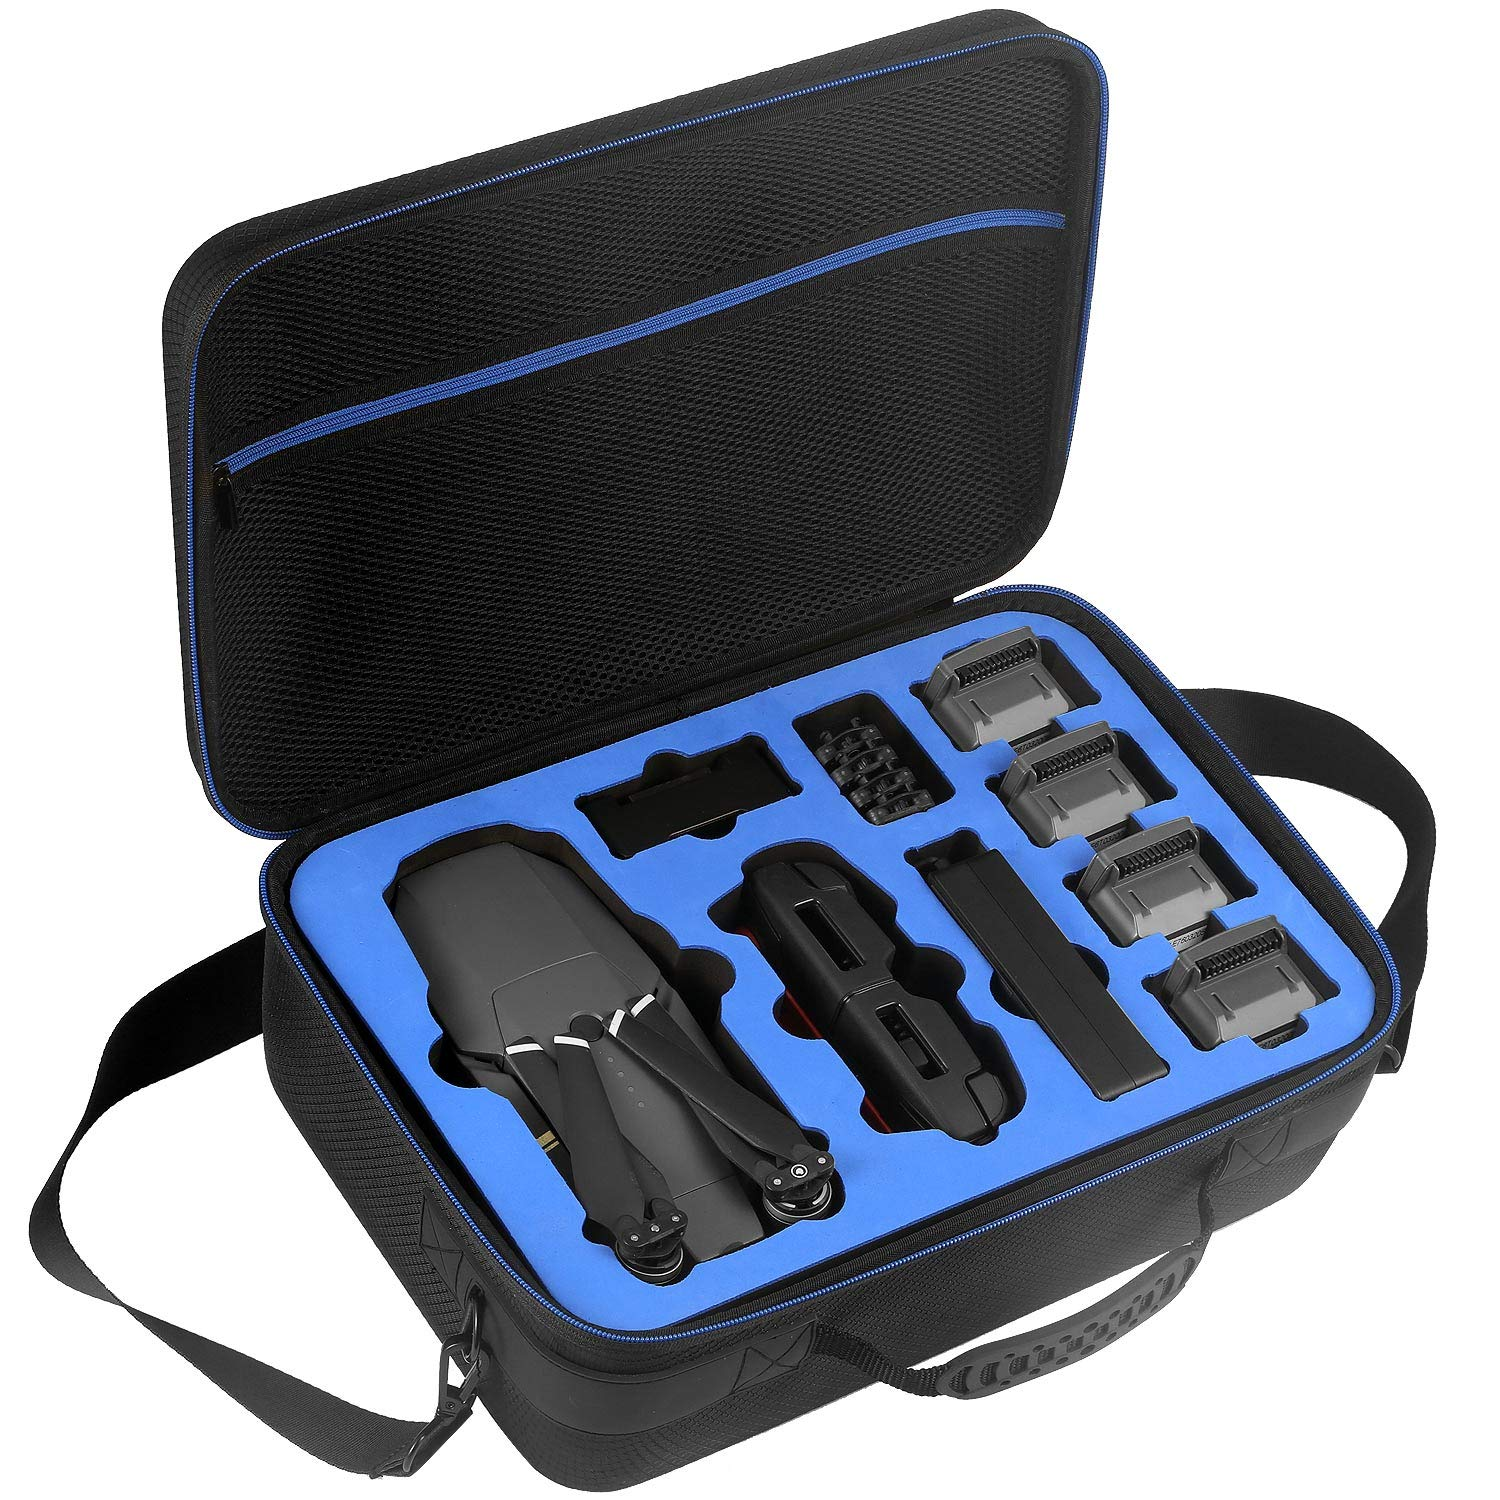 DACCKIT Travel Carrying Case Compatible with DJI Mavic Pro Mavic Pro Platinum Fly More Combo Fit Quadcopter Drone 5x Batteries Remote Controller Charging Hub Propellers and Other Accessories